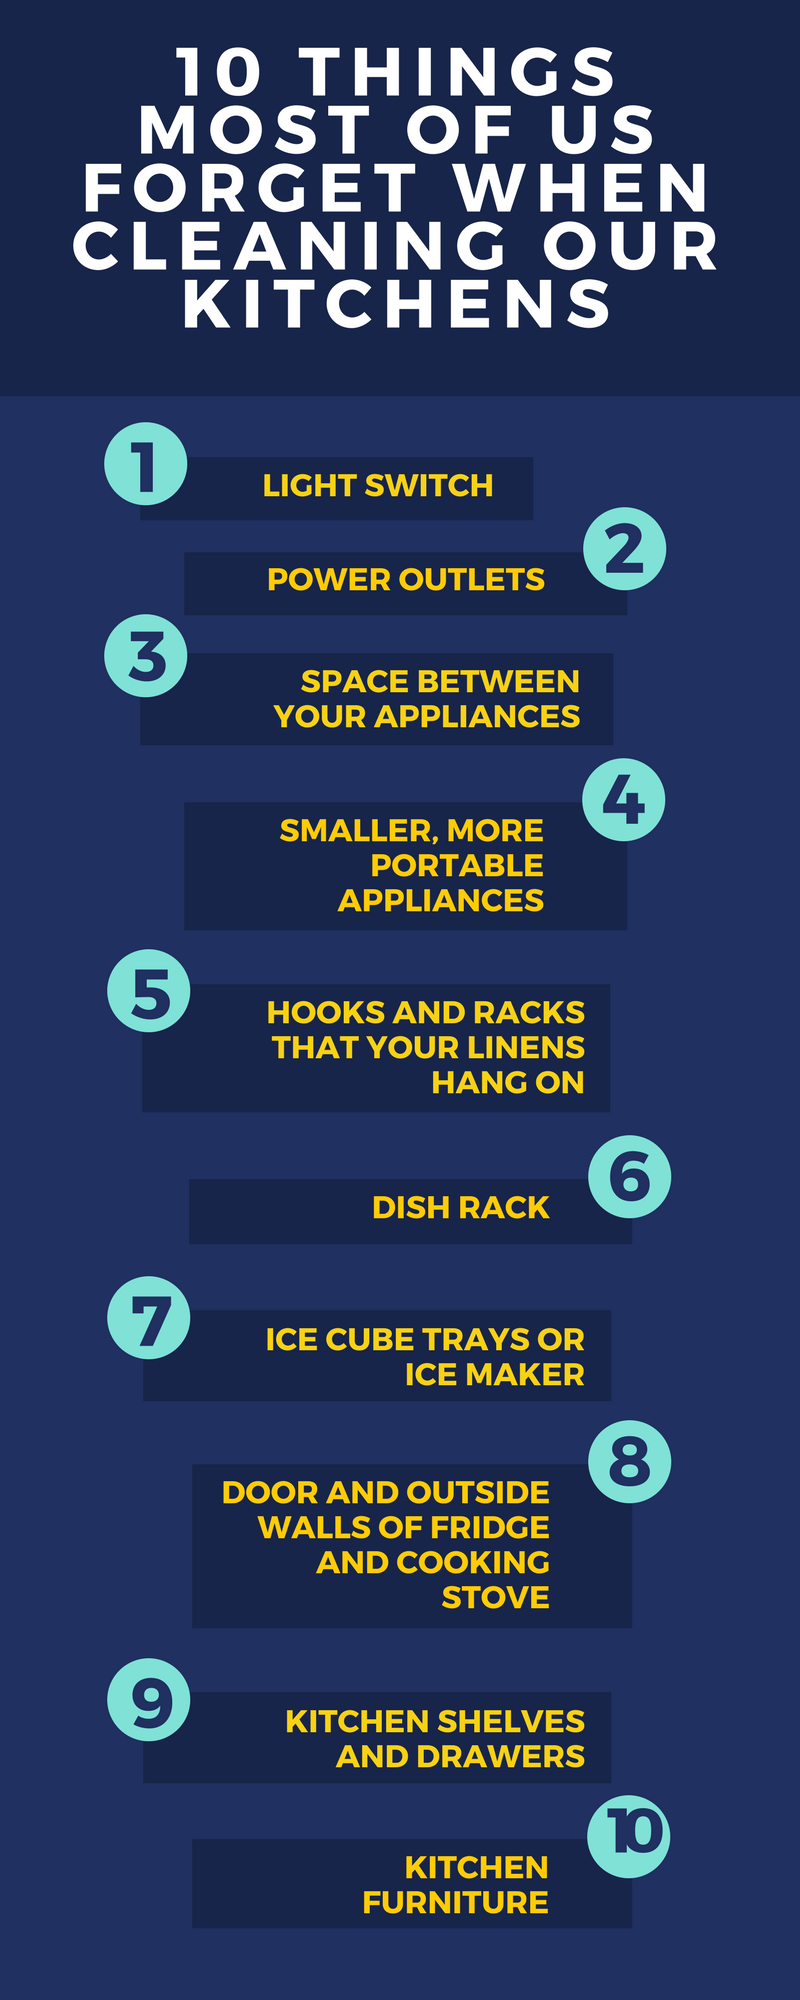 10 Things Most of Us Forget When Cleaning Our Kitchens